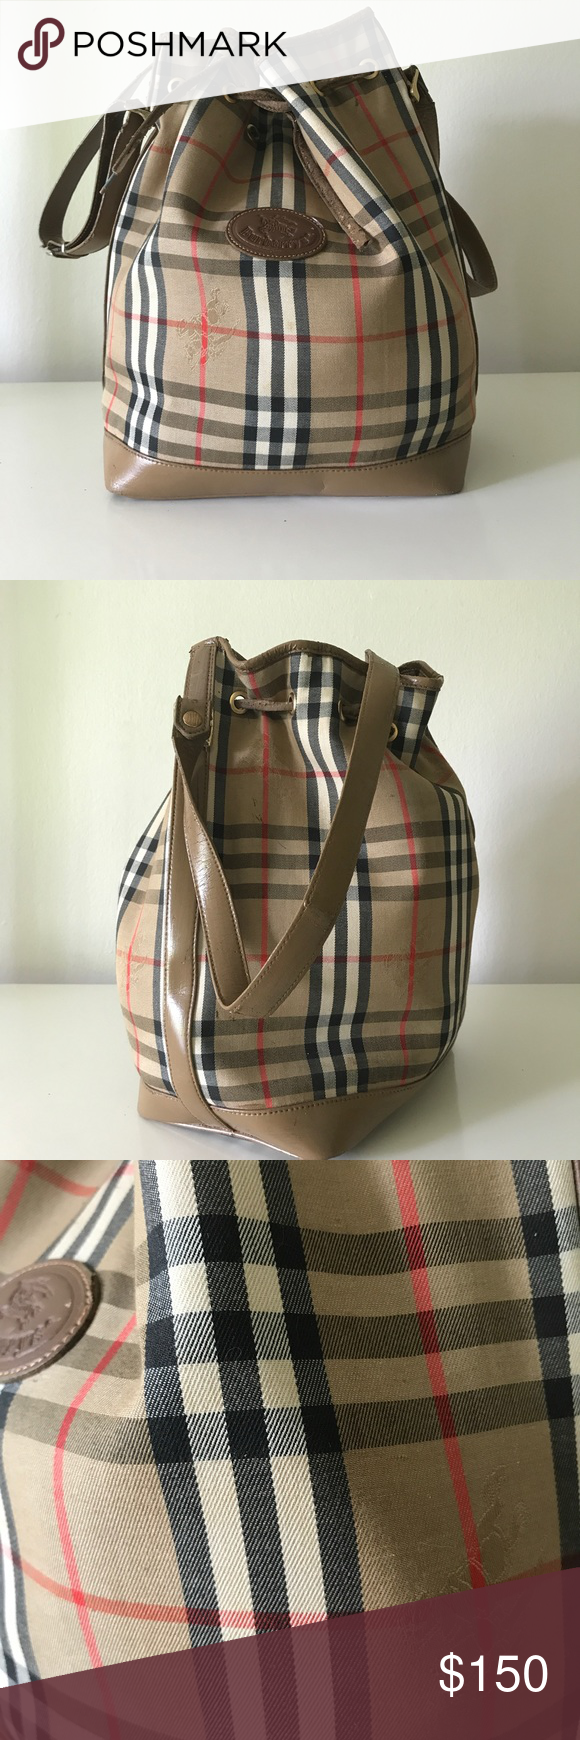 b30e24f7520f Authentic Vintage Burberry drawstring bucket bag Vintage Burberrys bucket  tote the bag has been refurbished painted